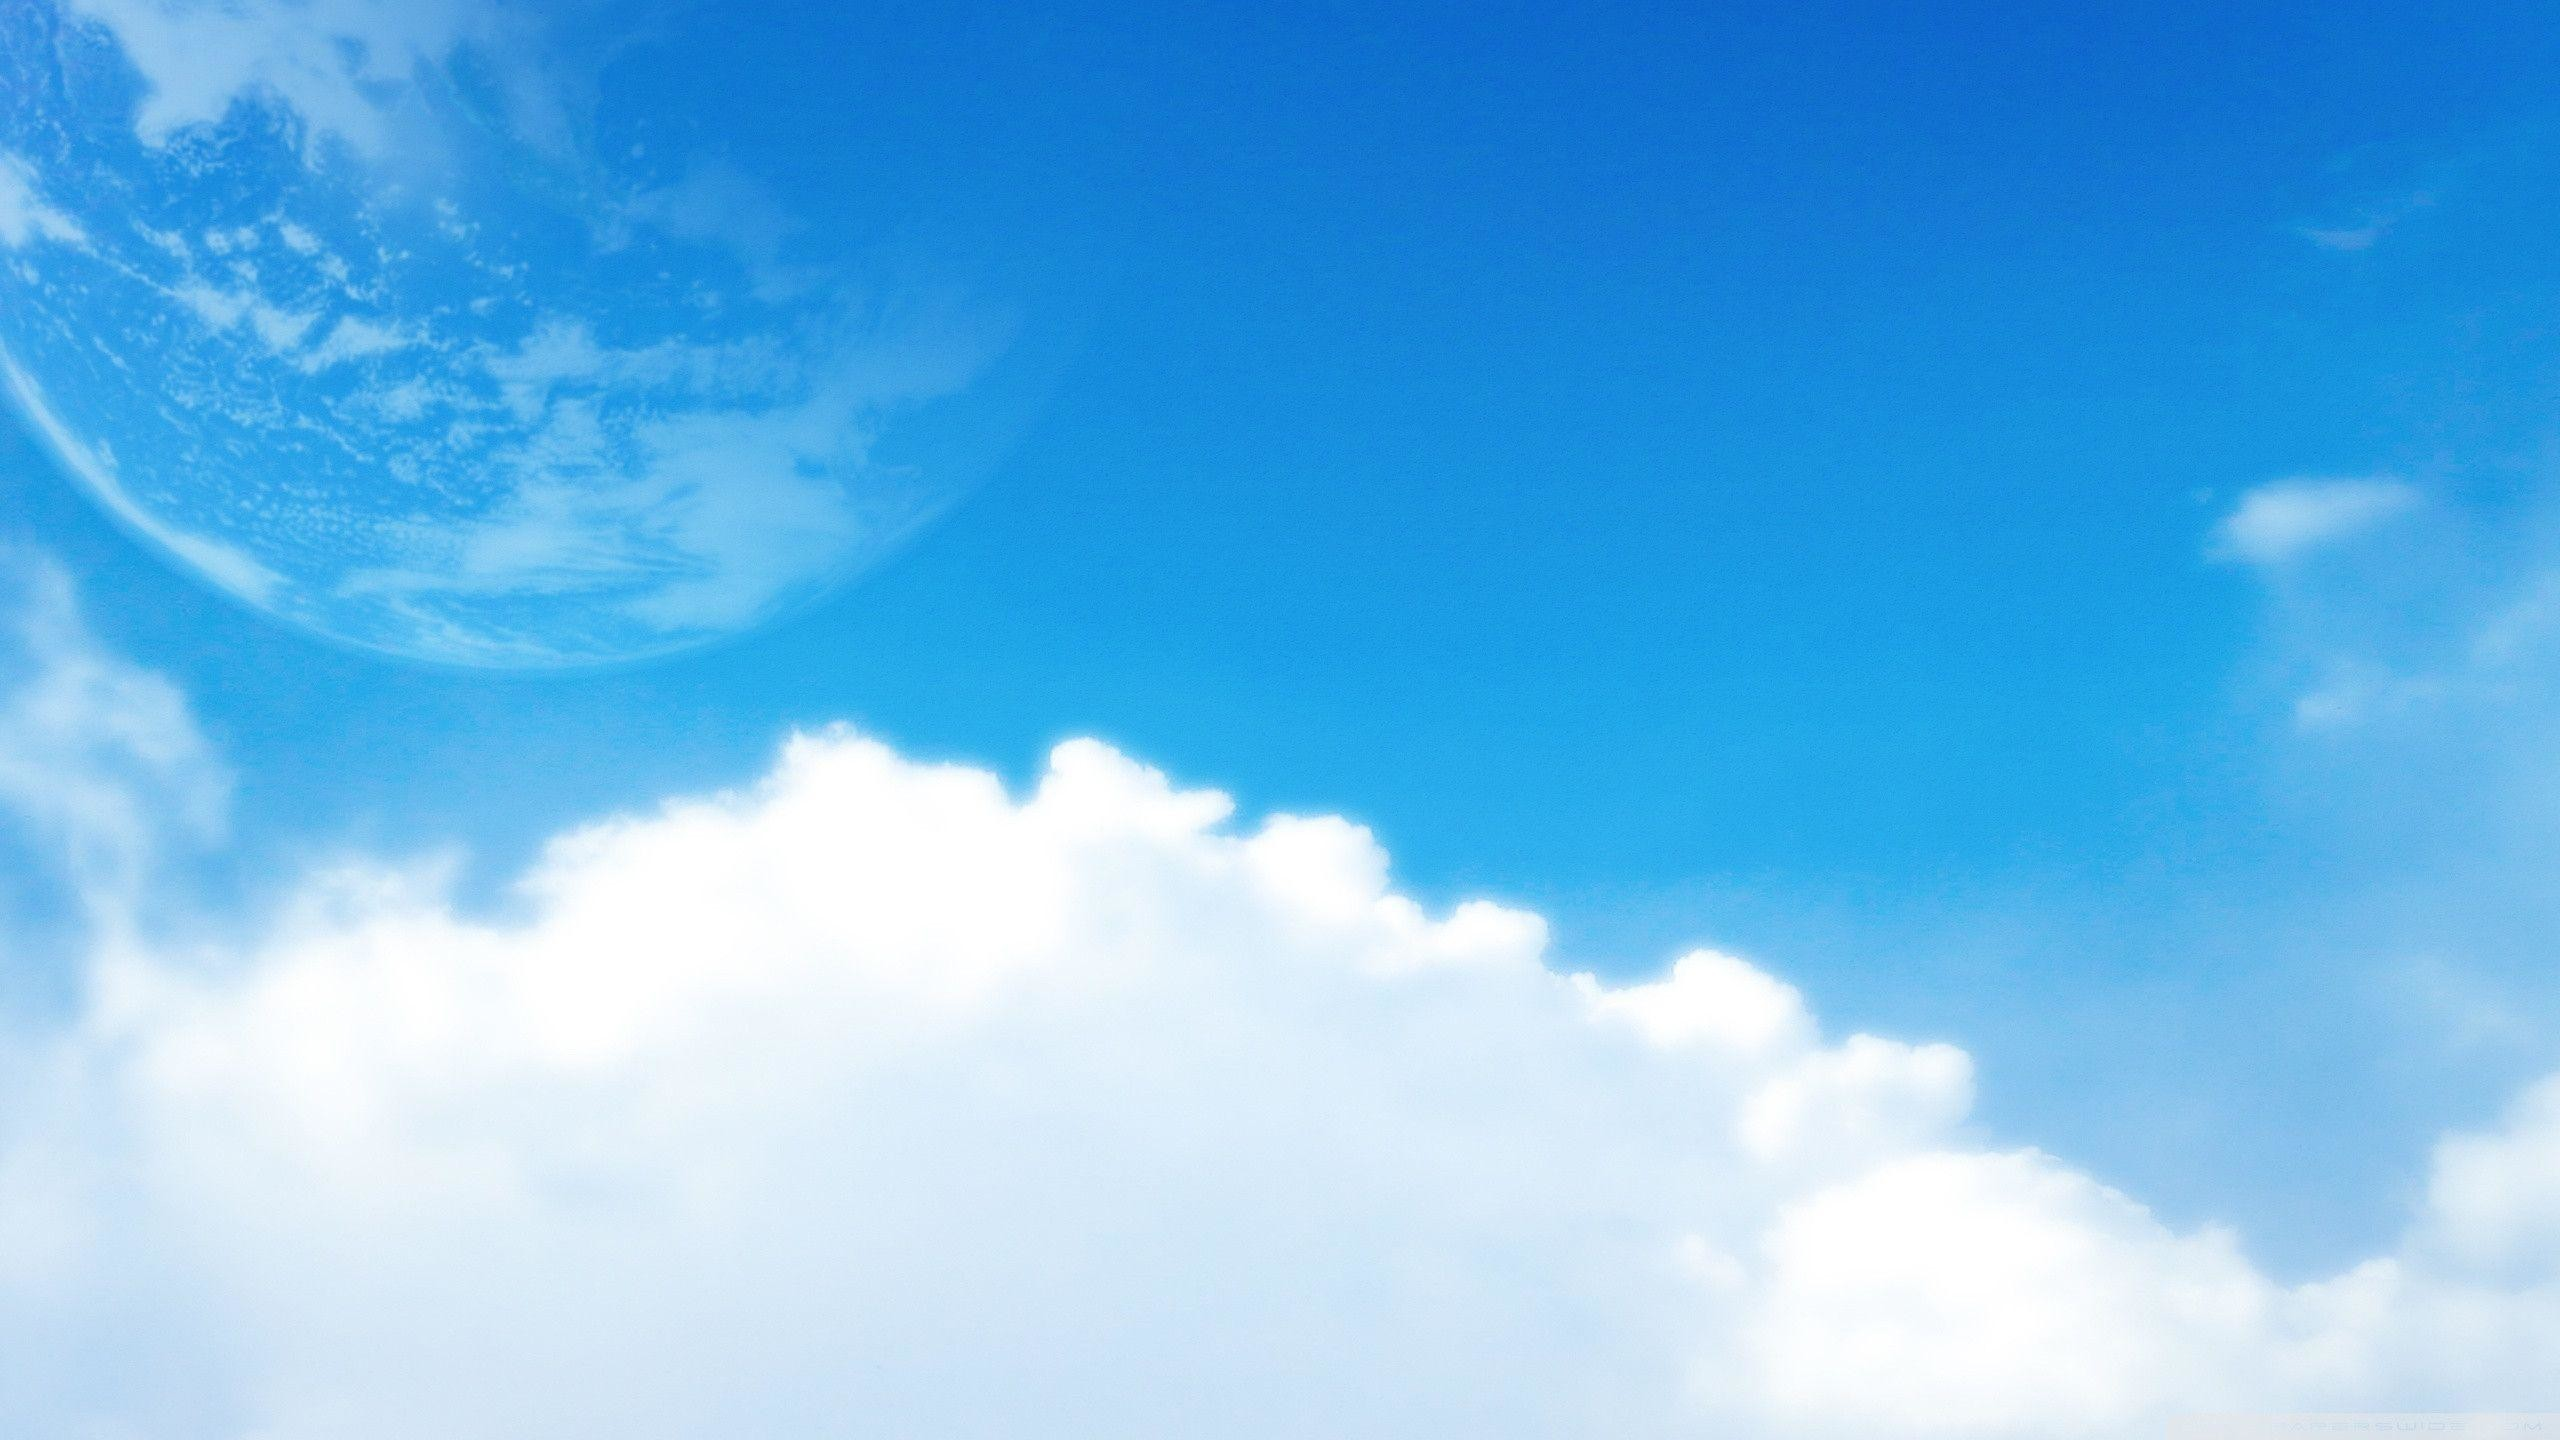 2560x1440 Blue Sky Wallpapers - HD Wallpapers OS